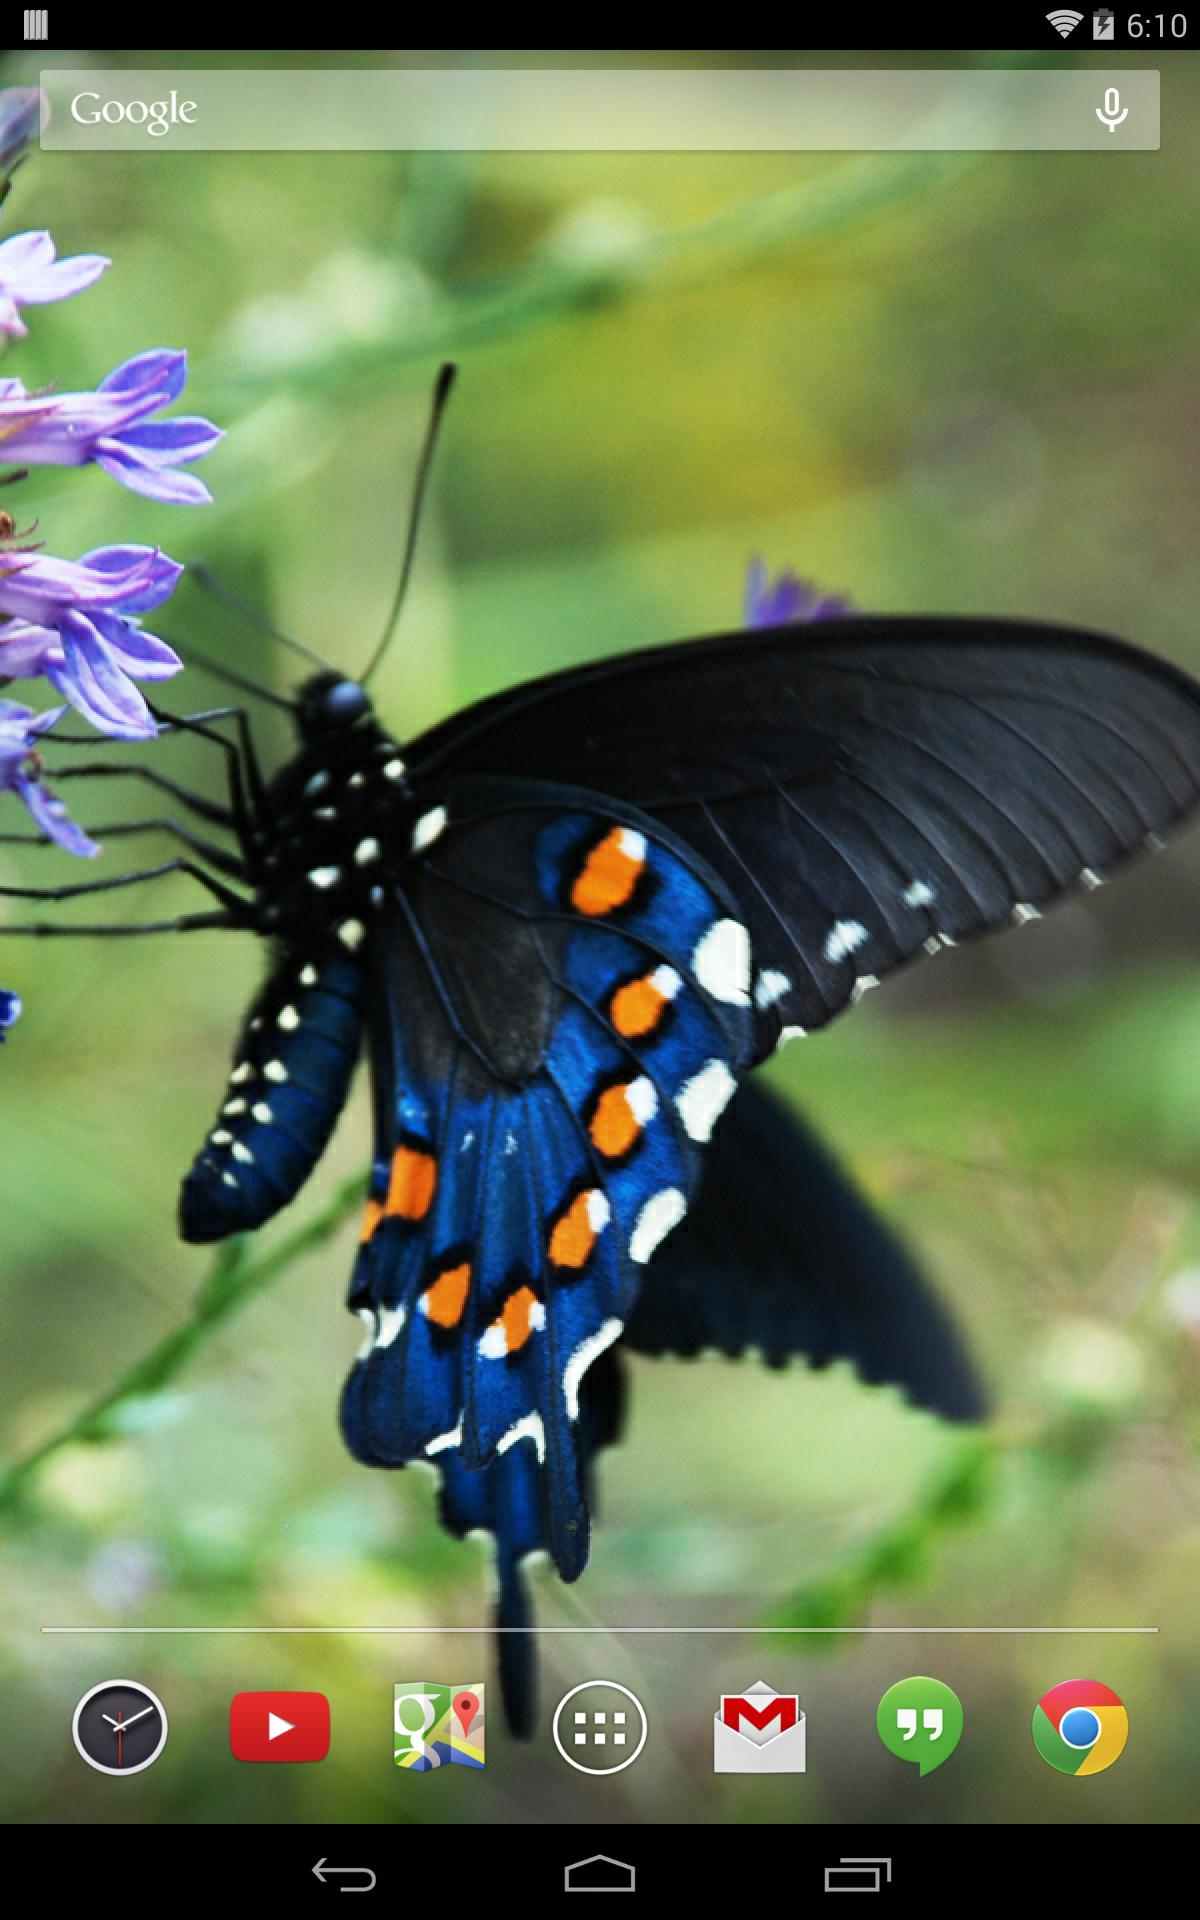 Butterflies Live Wallpaper for Android - APK Download